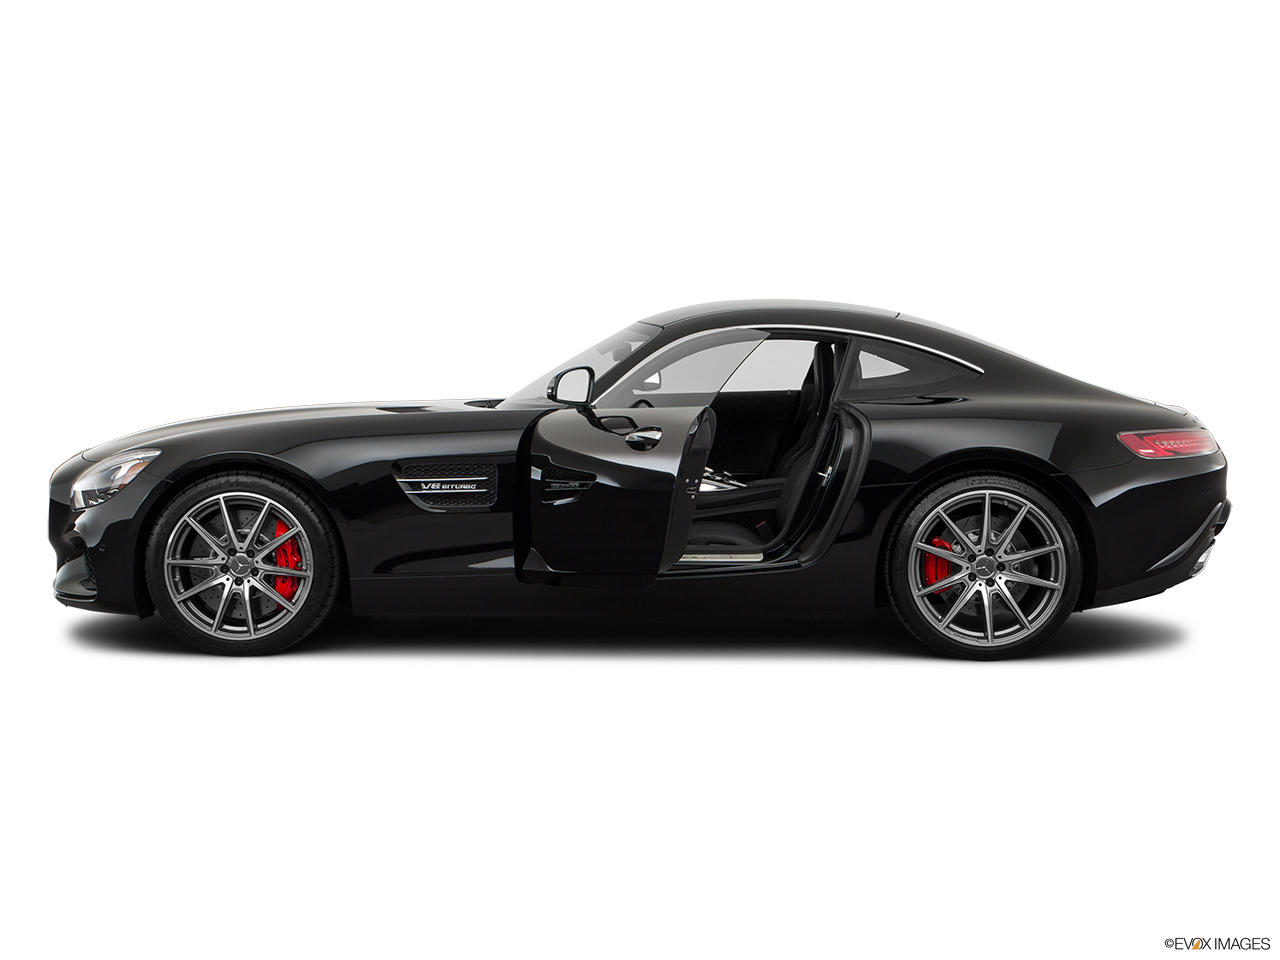 Mercedes benz amg gt 2017 4 0l s in uae new car prices for 2017 mercedes benz amg gt price